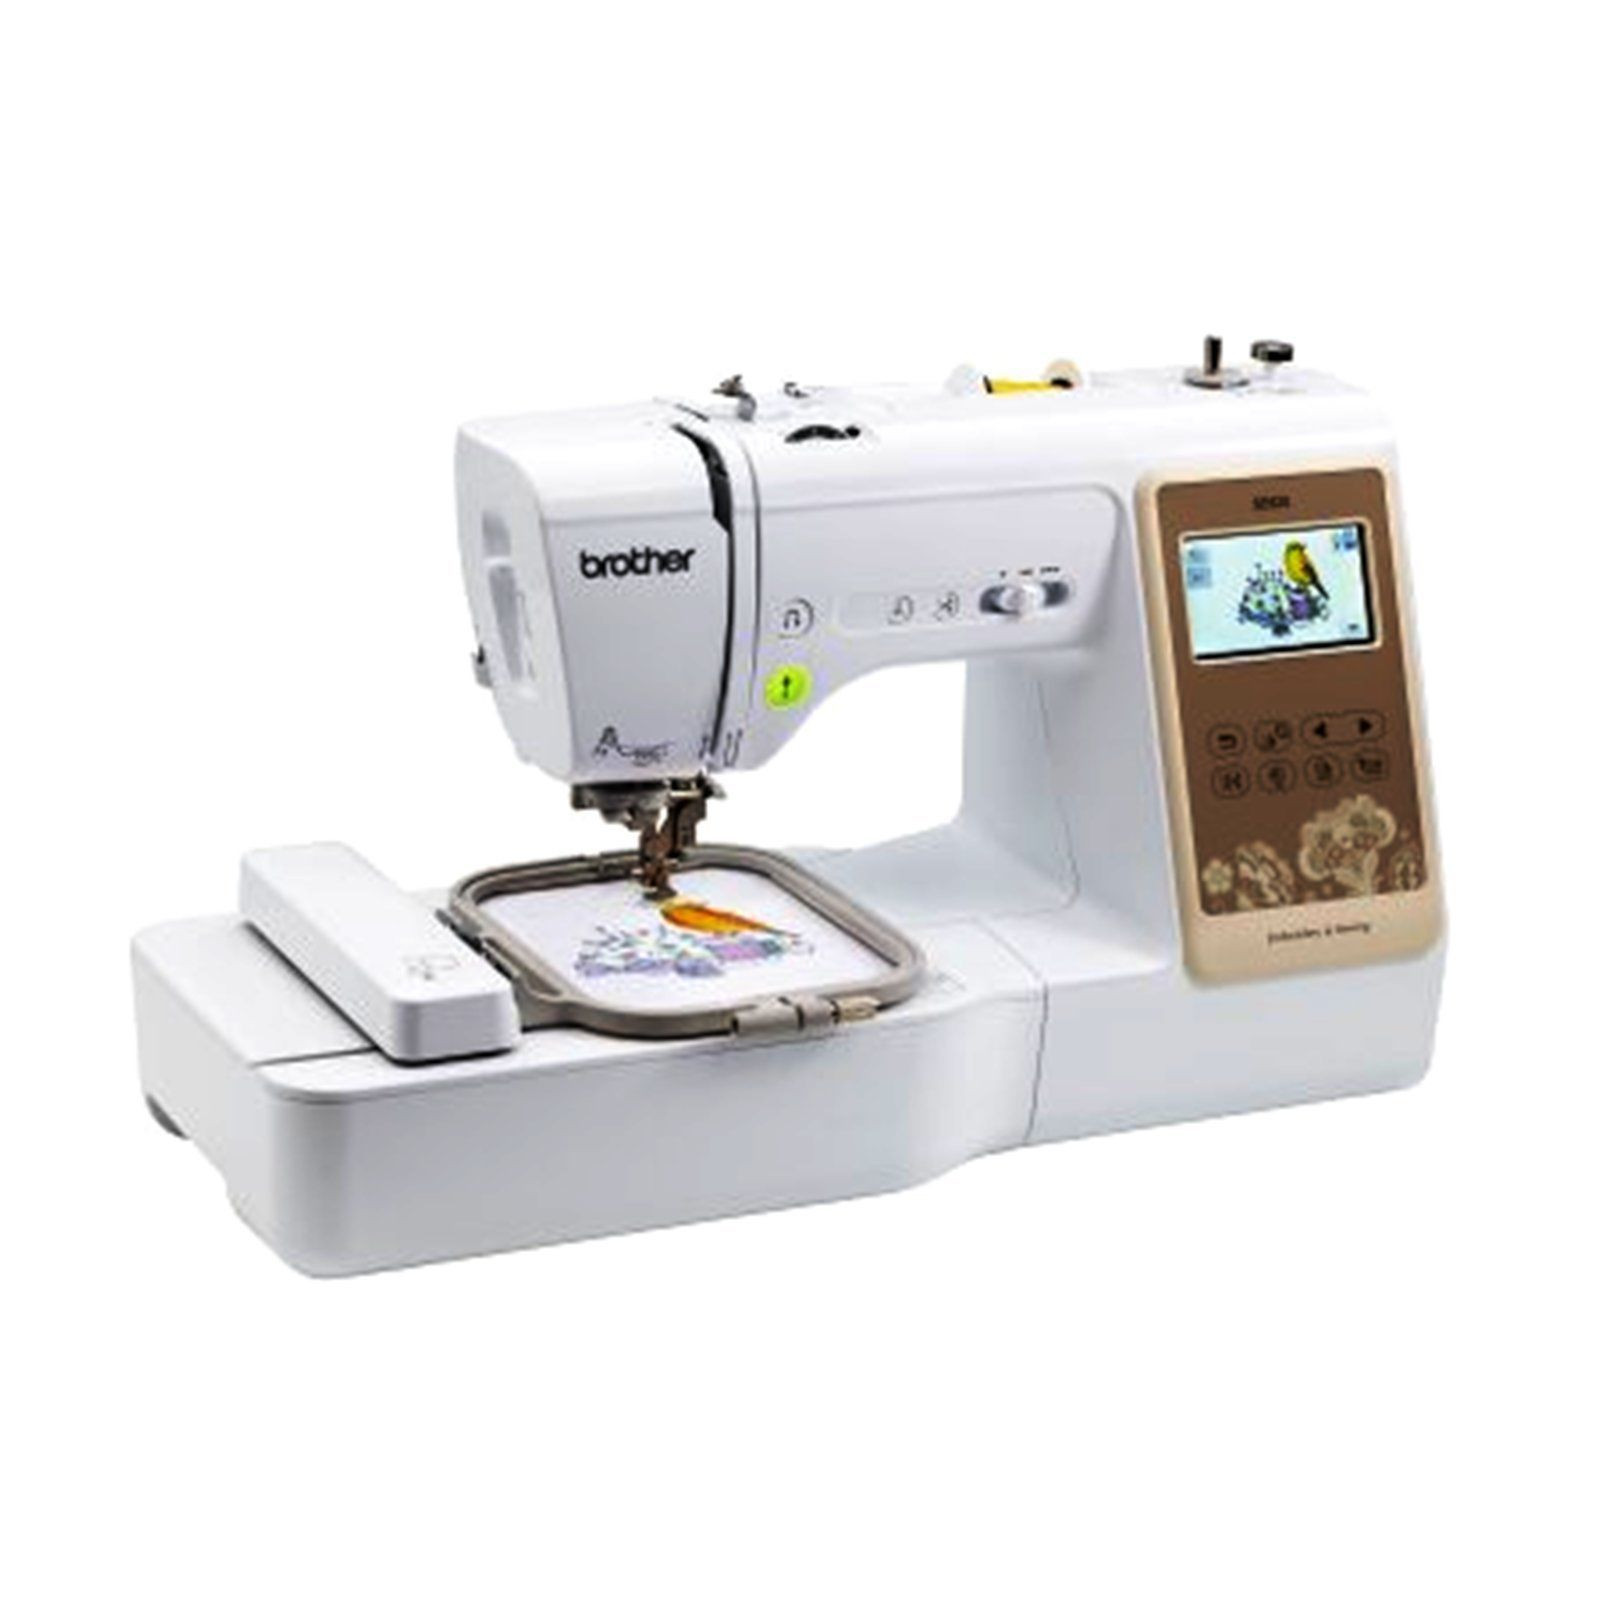 Sewing and Embroidery Machine Lovely Brother Se625 Puterized Sewing and Embroidery Machine Of Unique 48 Pics Sewing and Embroidery Machine